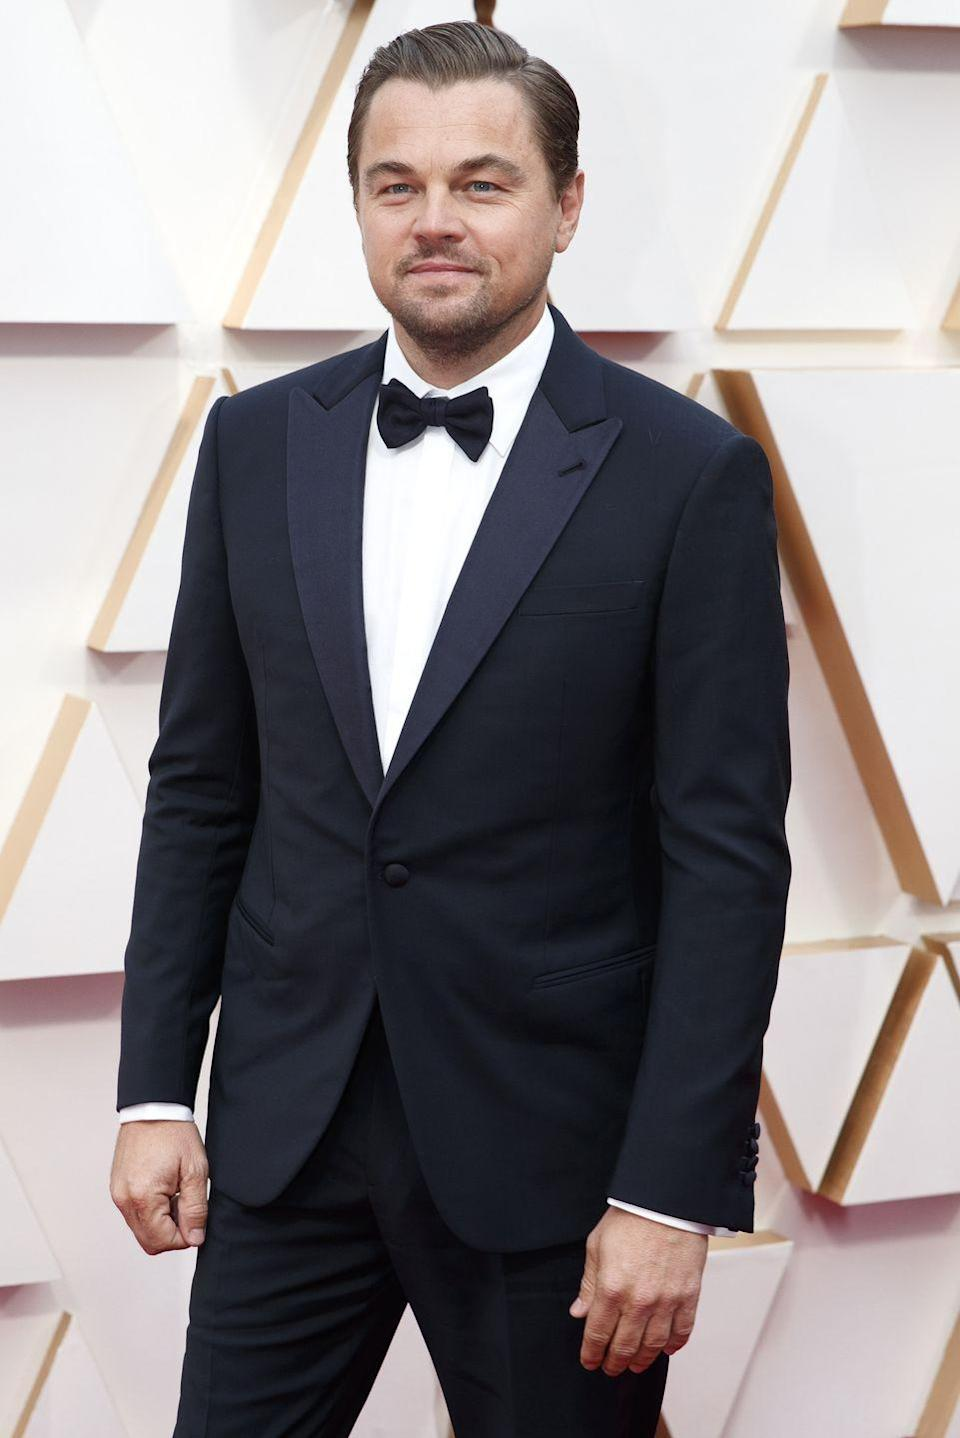 <p>Sure, Leo's one of the most famous men to step on a Hollywood red carpet these days. But who remembers how he got his acting start starring on the comedy sitcom, <em>Growing Pains</em>?</p>